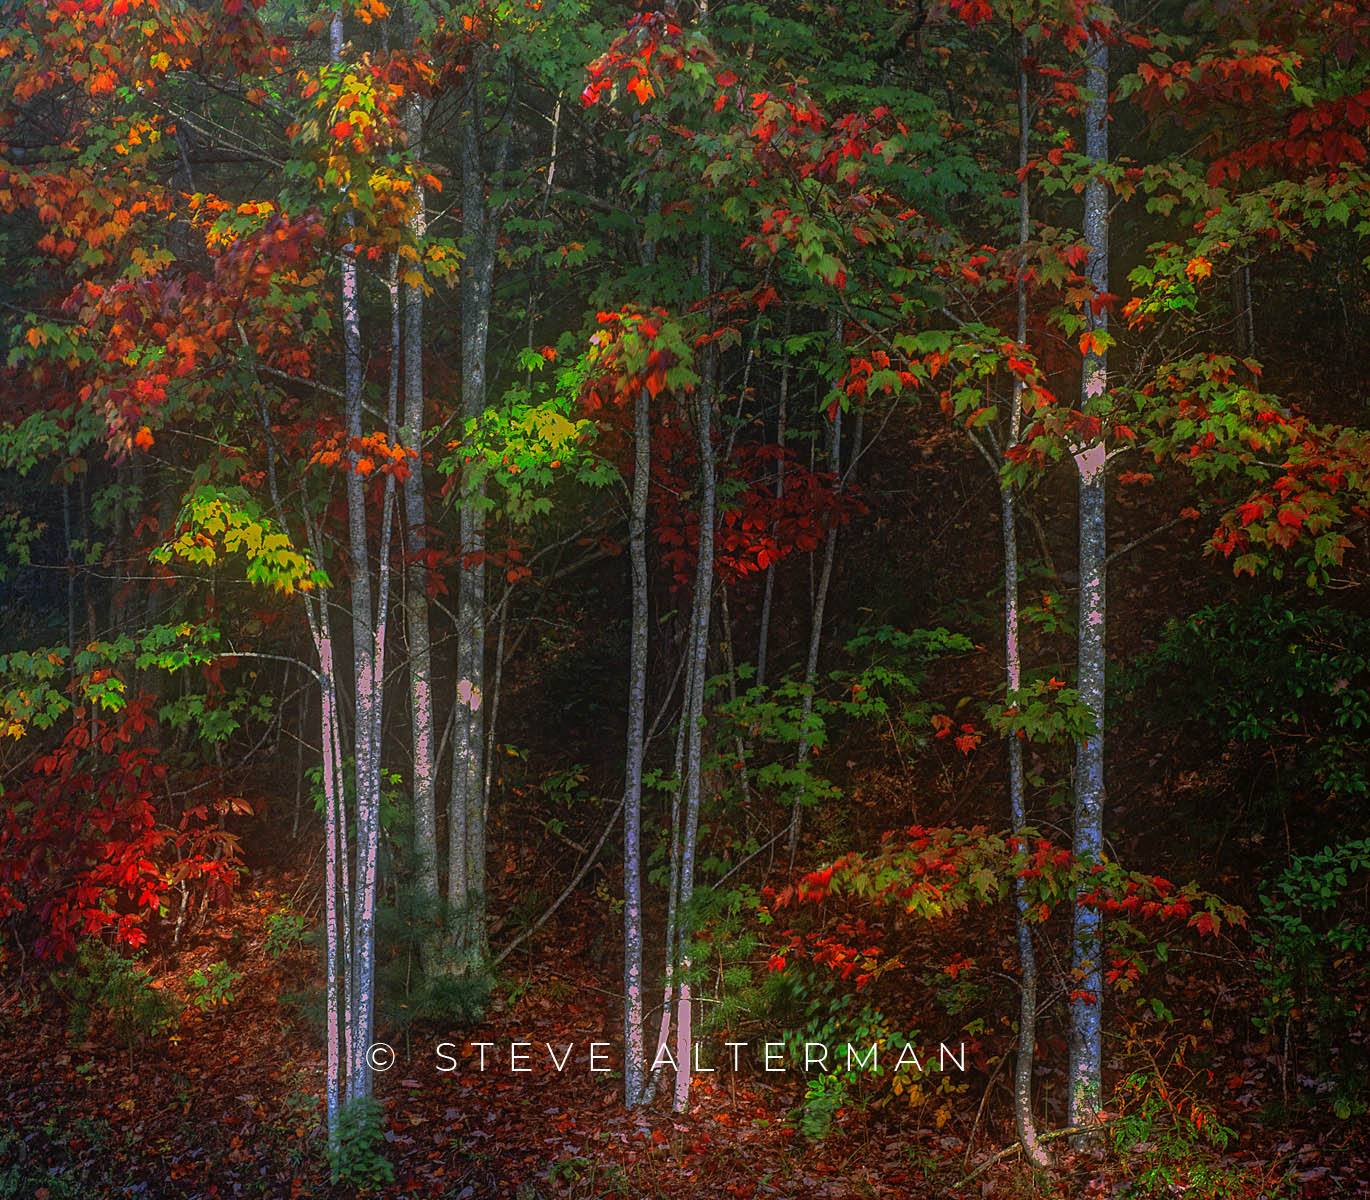 833 Autumn, Foothills Parkway - Great Smoky Mountains NP